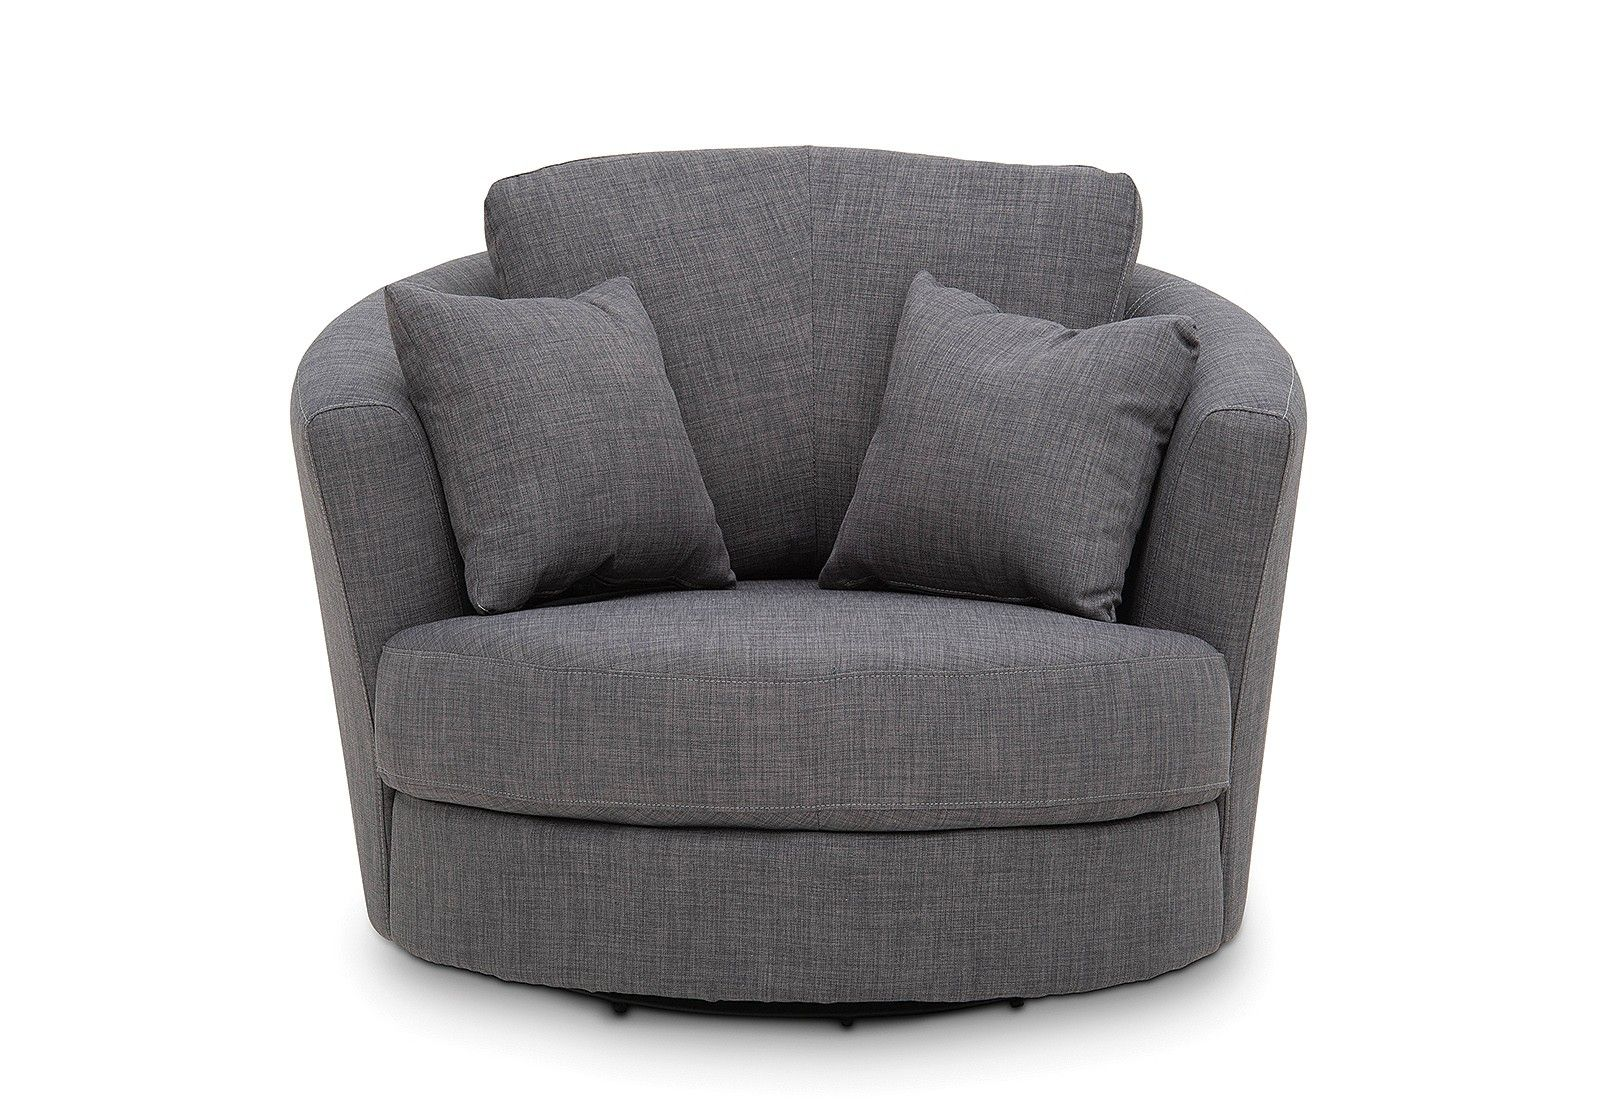 Omaha Fabric Swivel Chair | Amart Furniture | Chair ...